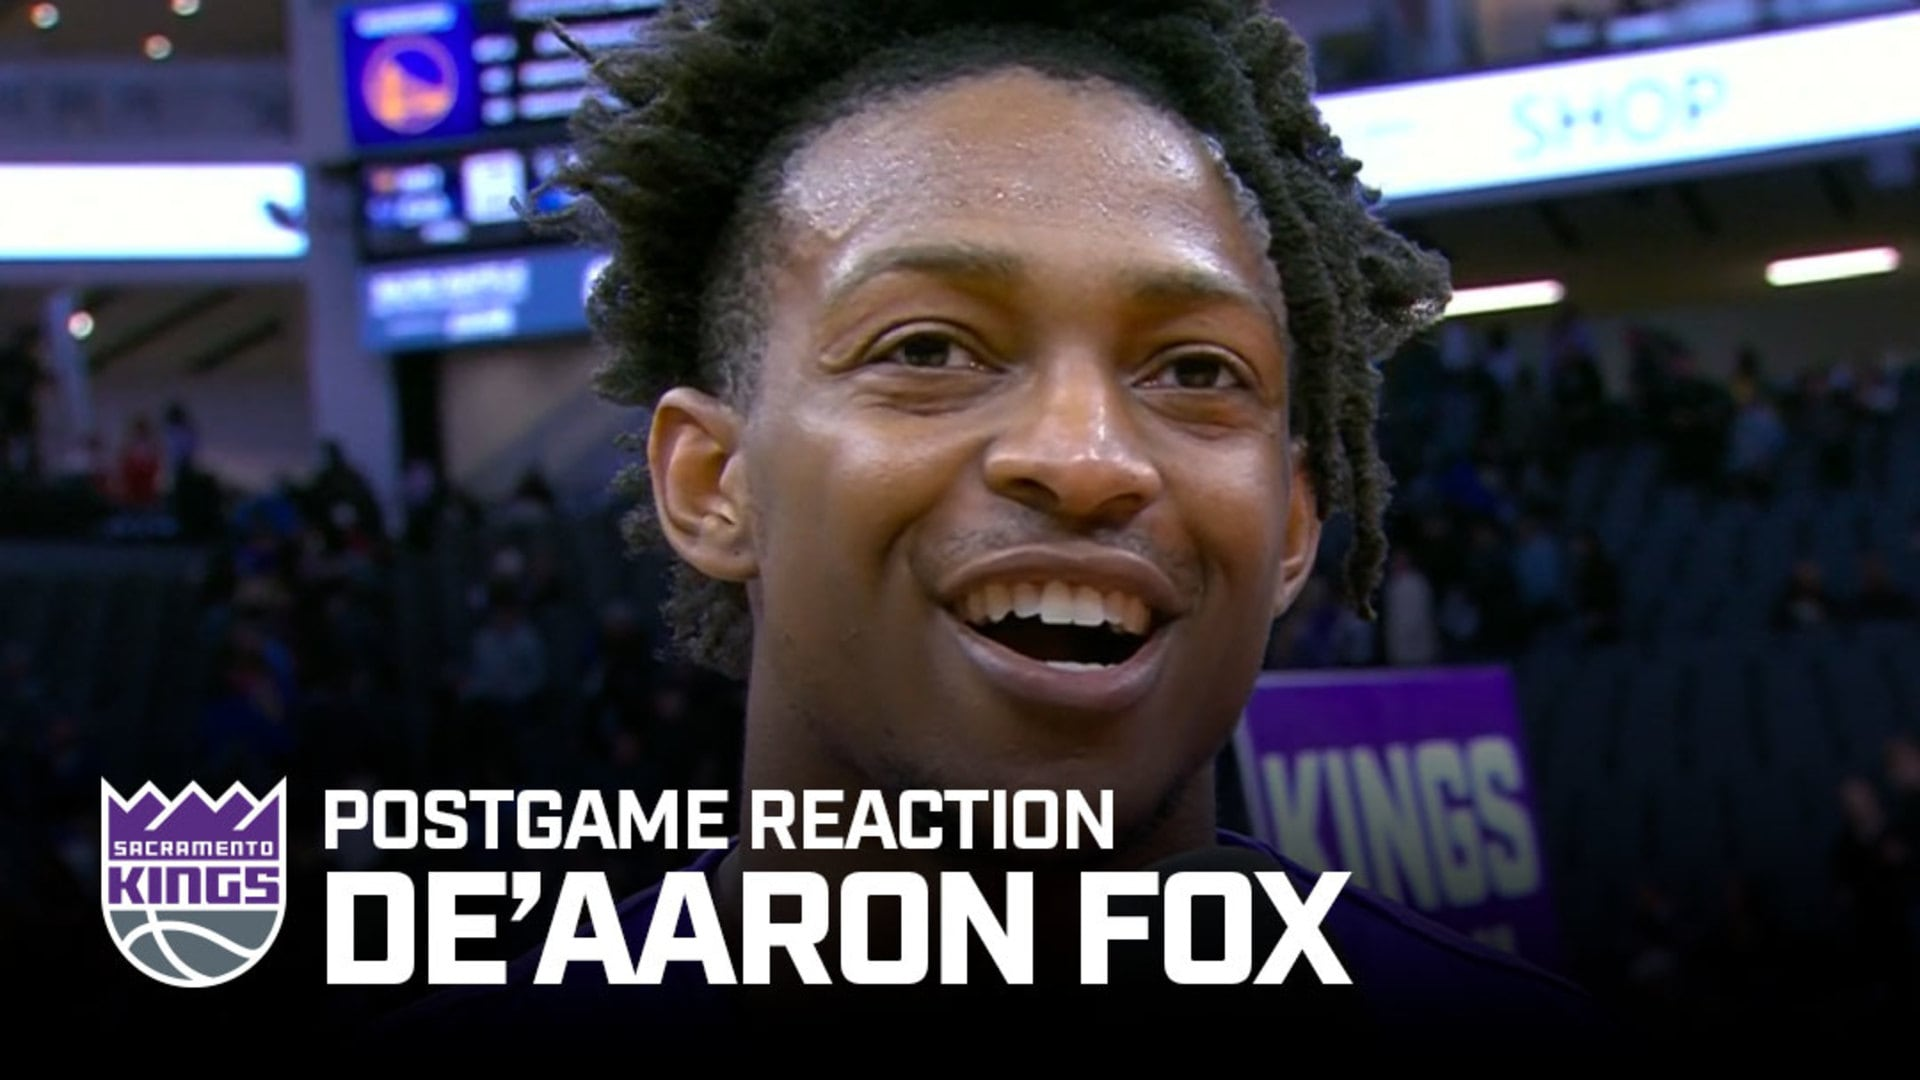 'I Just Came in Extremely Focused' | De'Aaron Fox Postgame Reaction 1.6.20